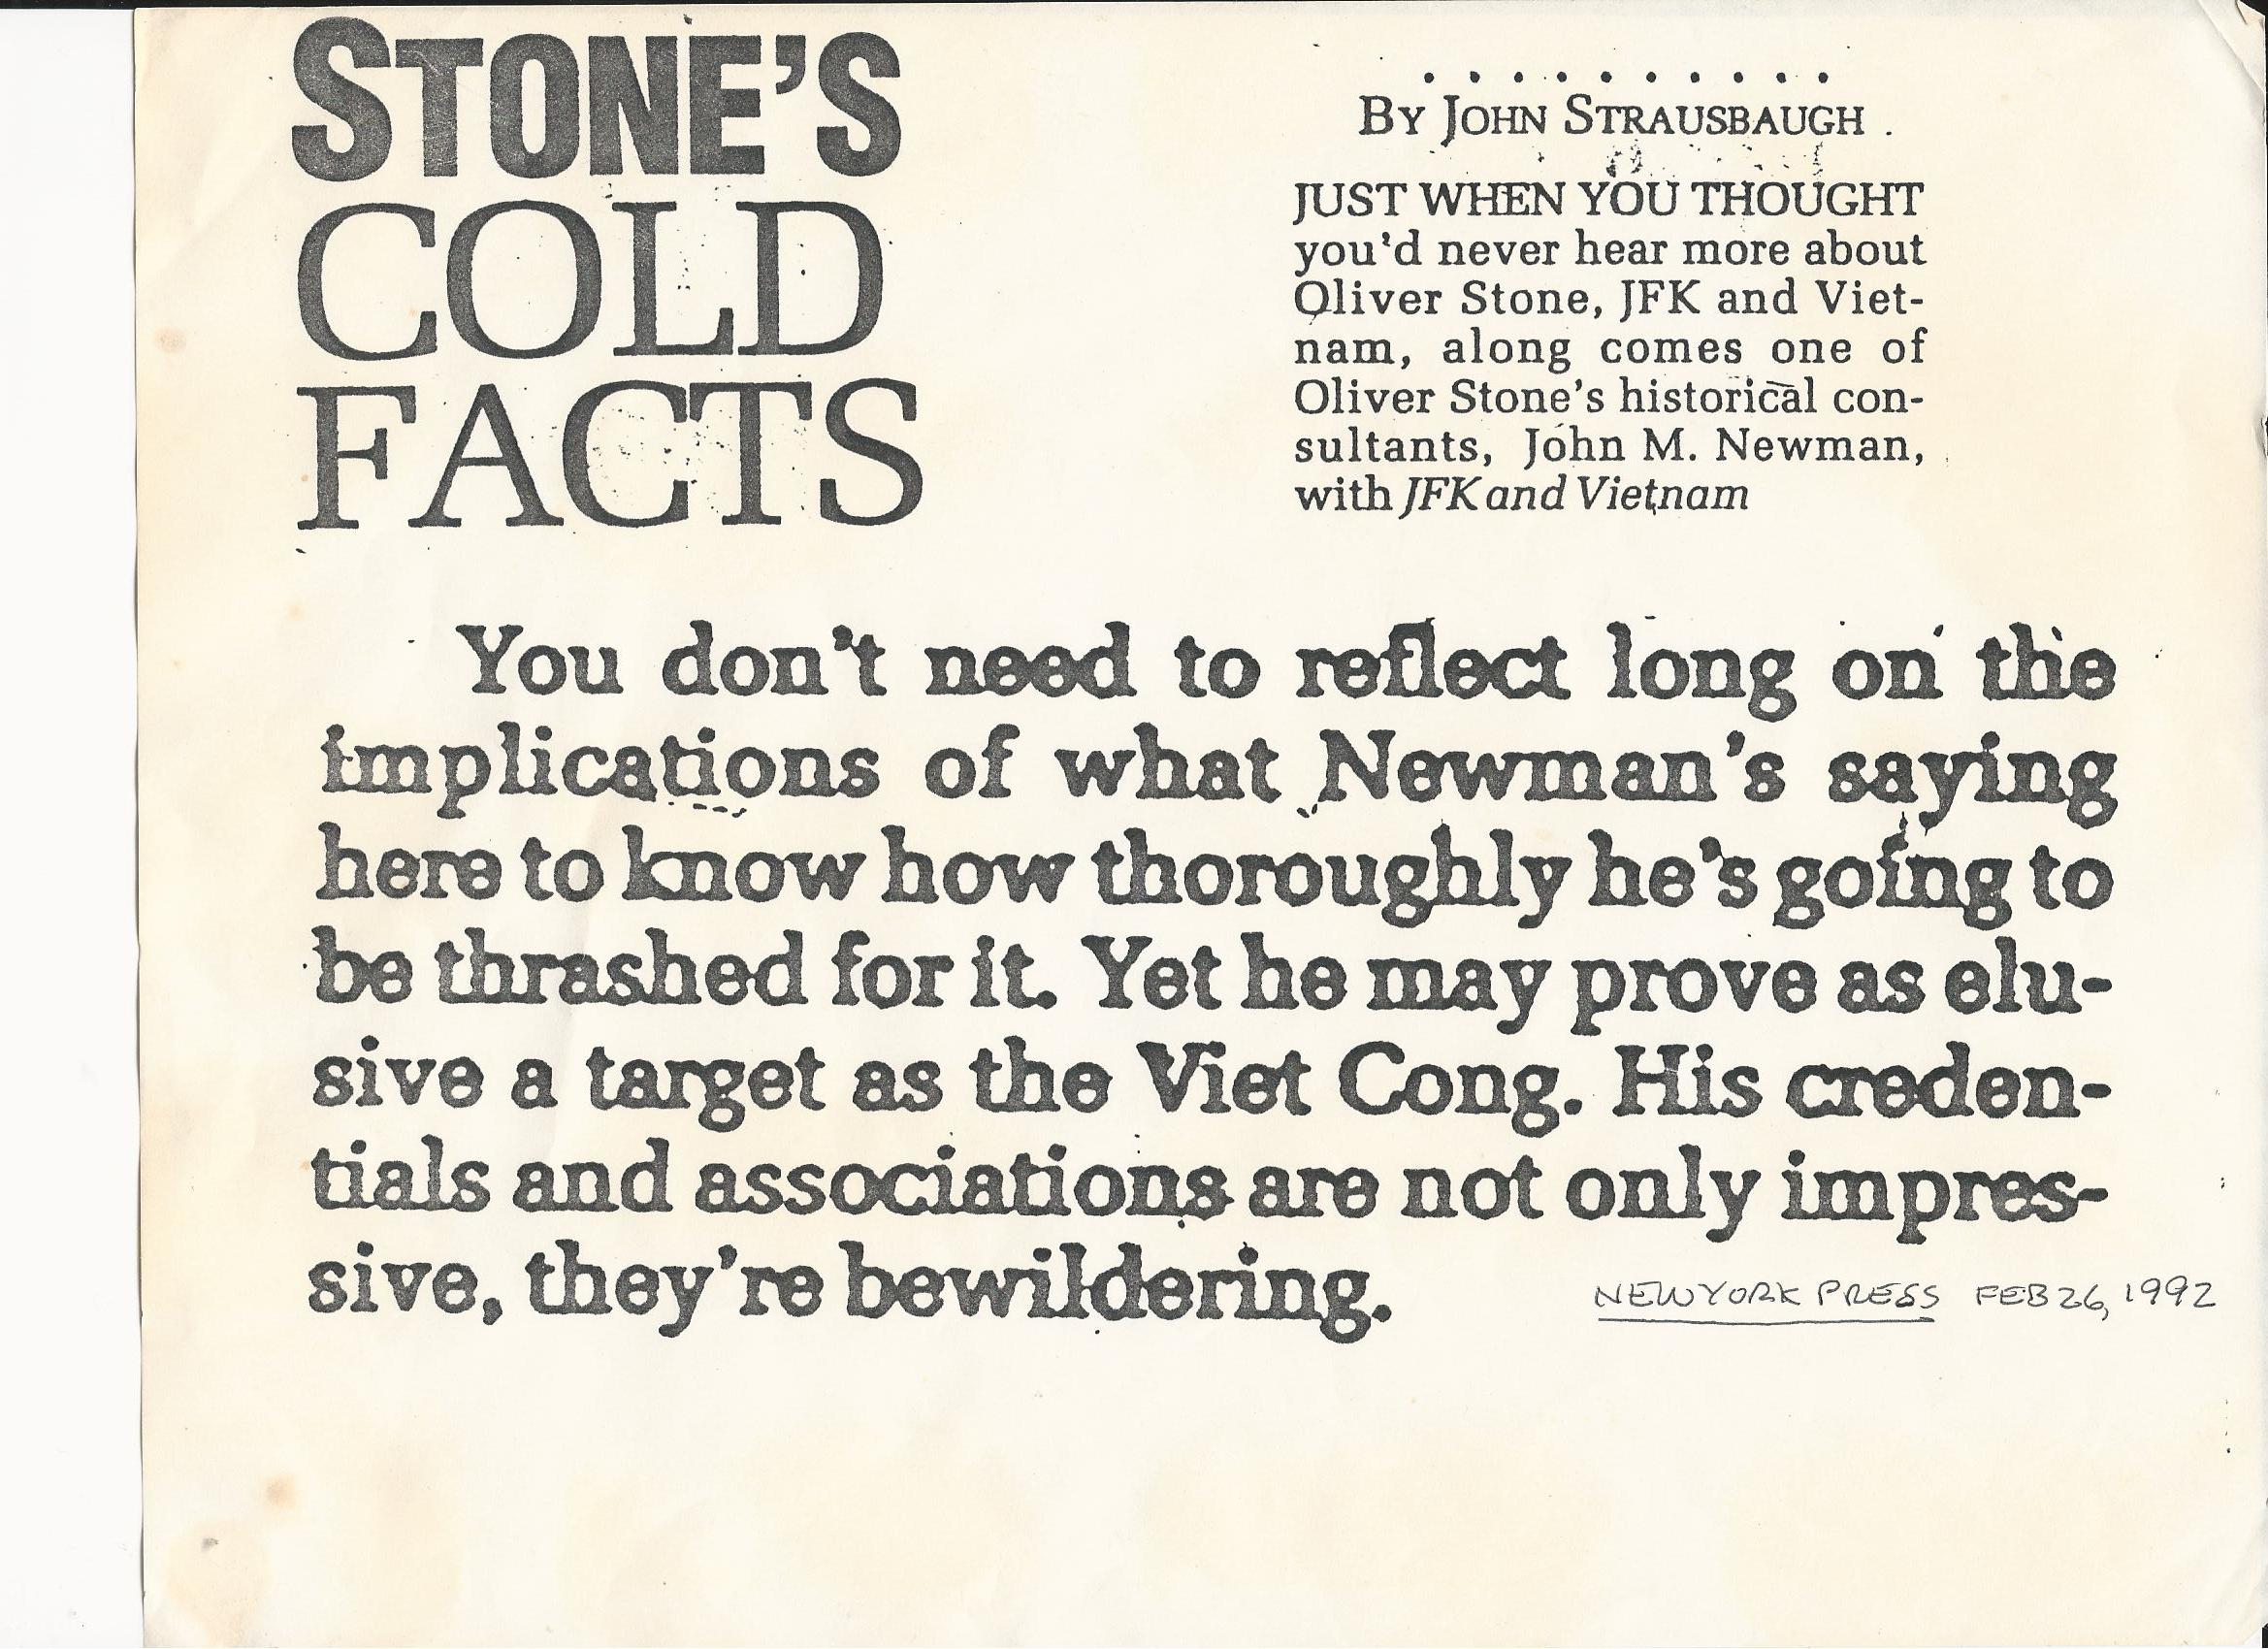 NYPRESSSTONEANDNEWMAN Stone's Cold Facts